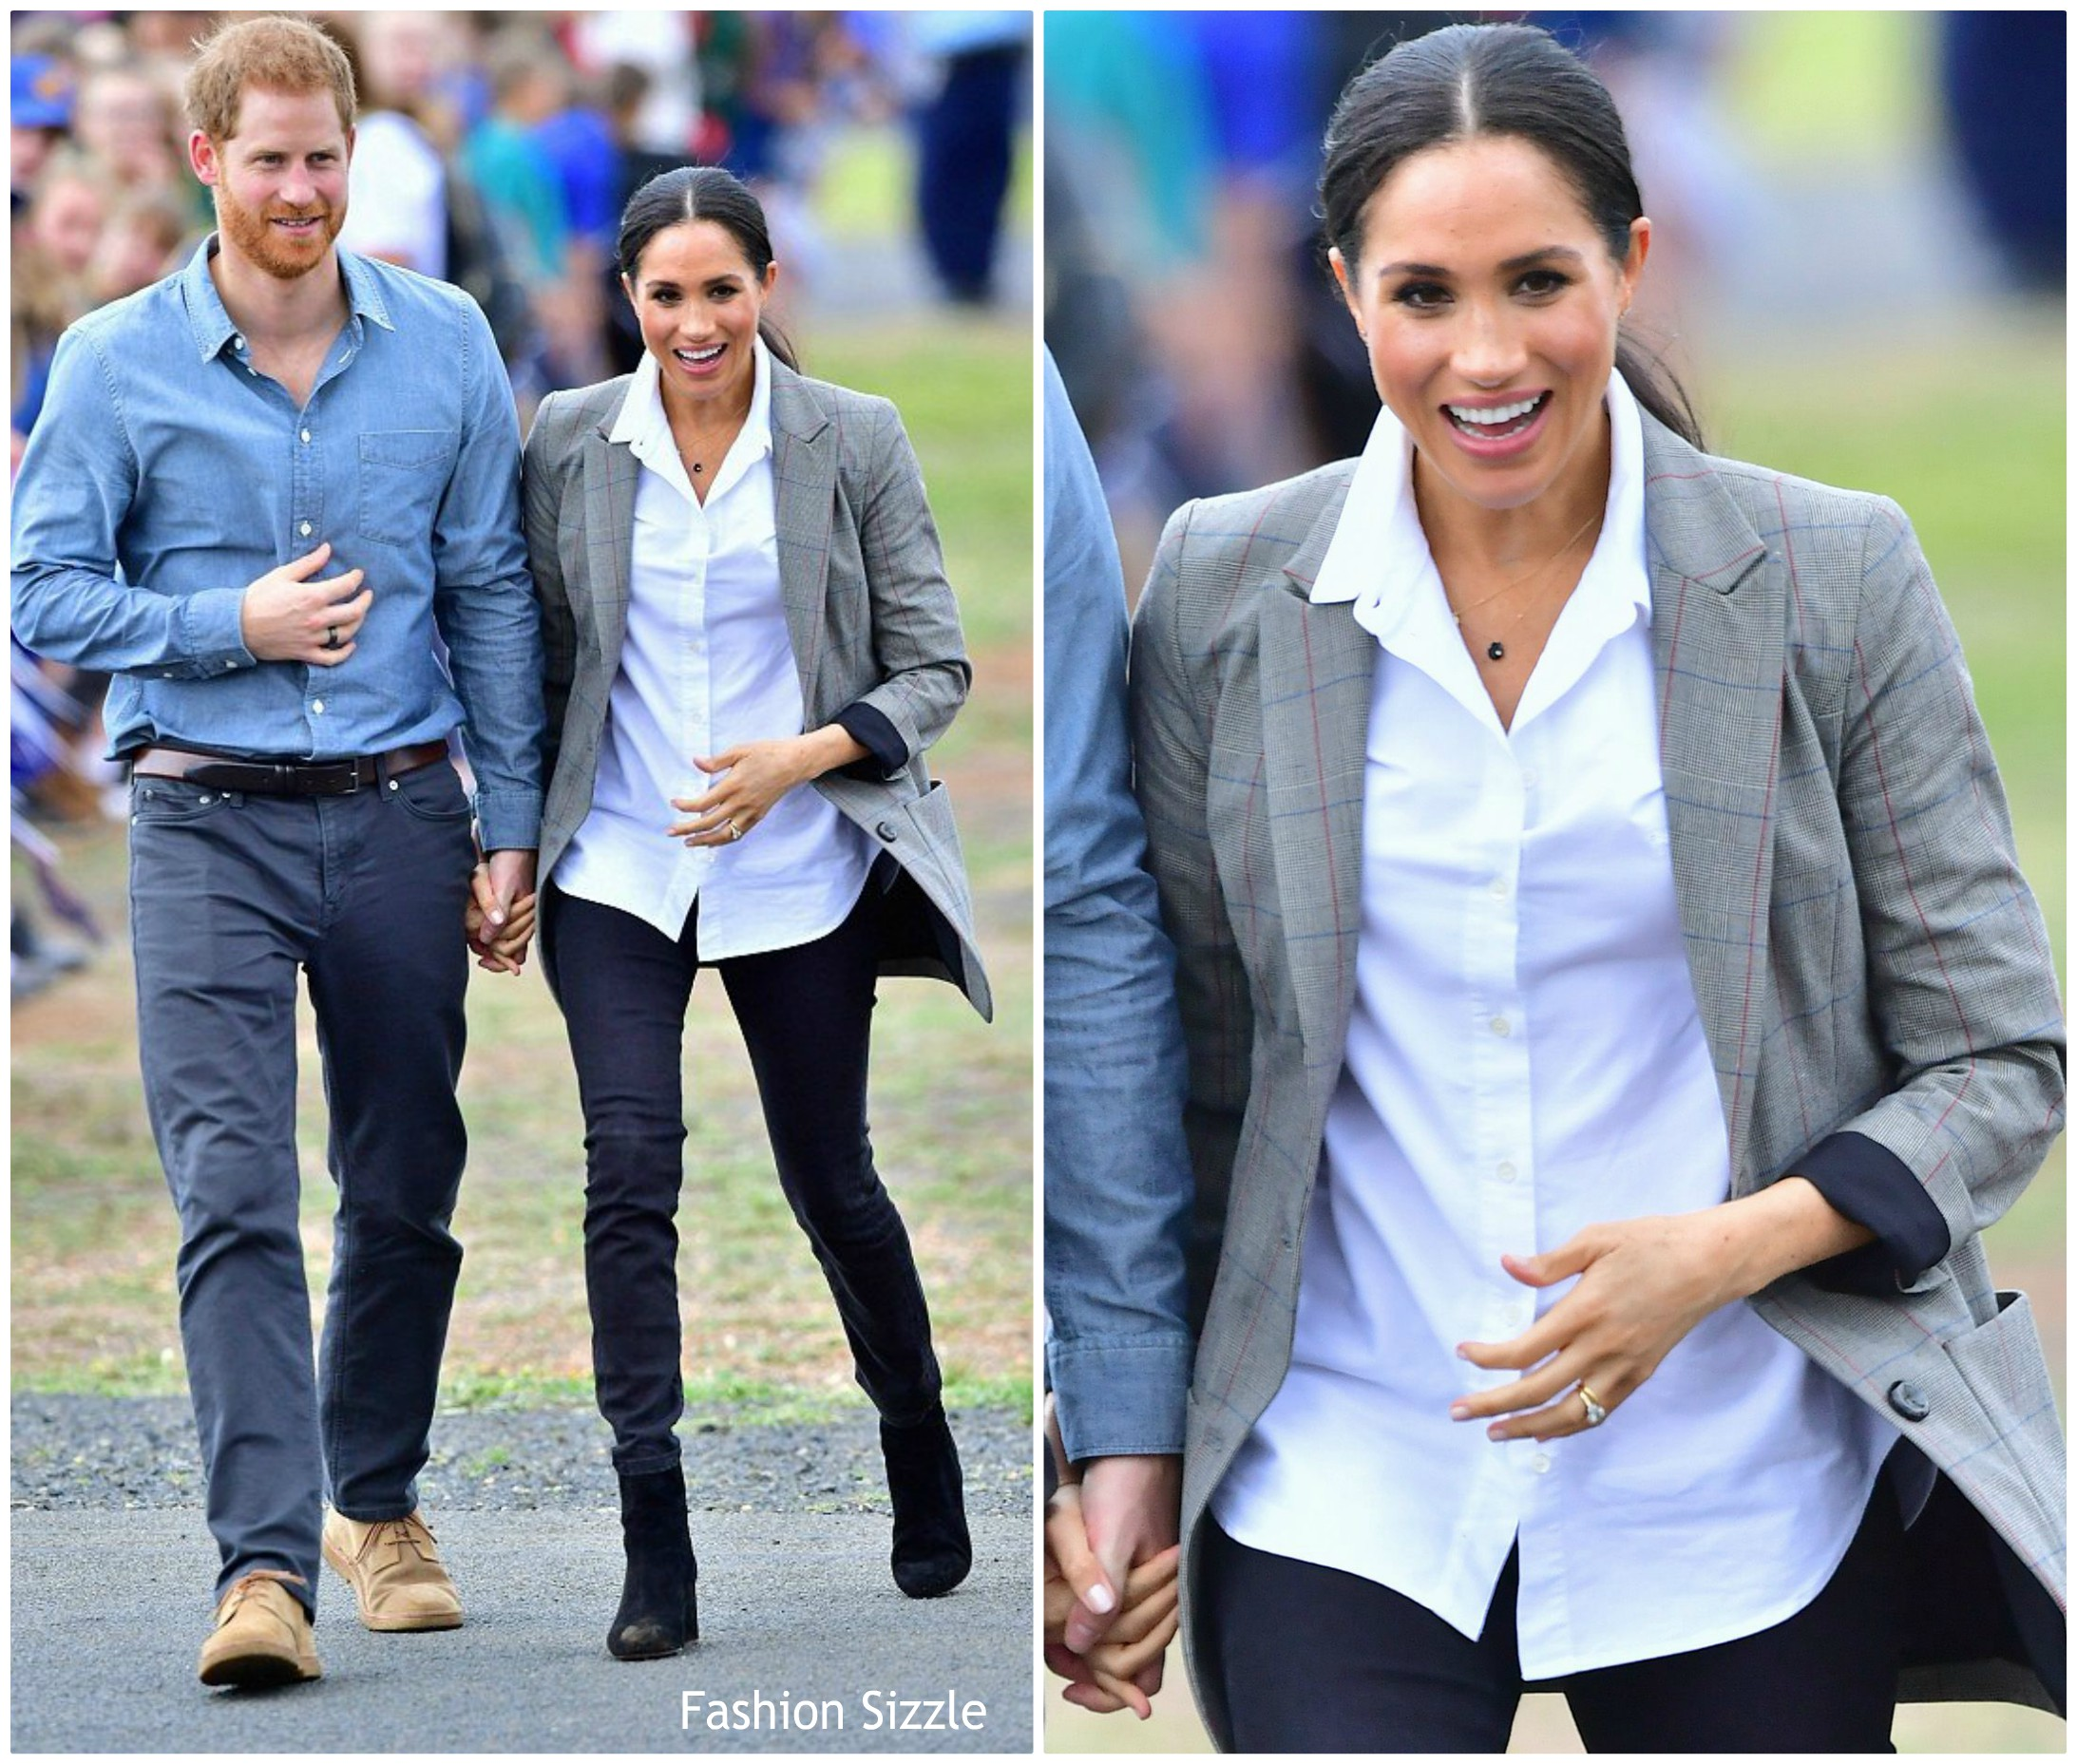 meghan-duchess-of-sussex-in-serena-williams-collection-maison-kitsune-asustralian-outlander-dubbo-city-visit